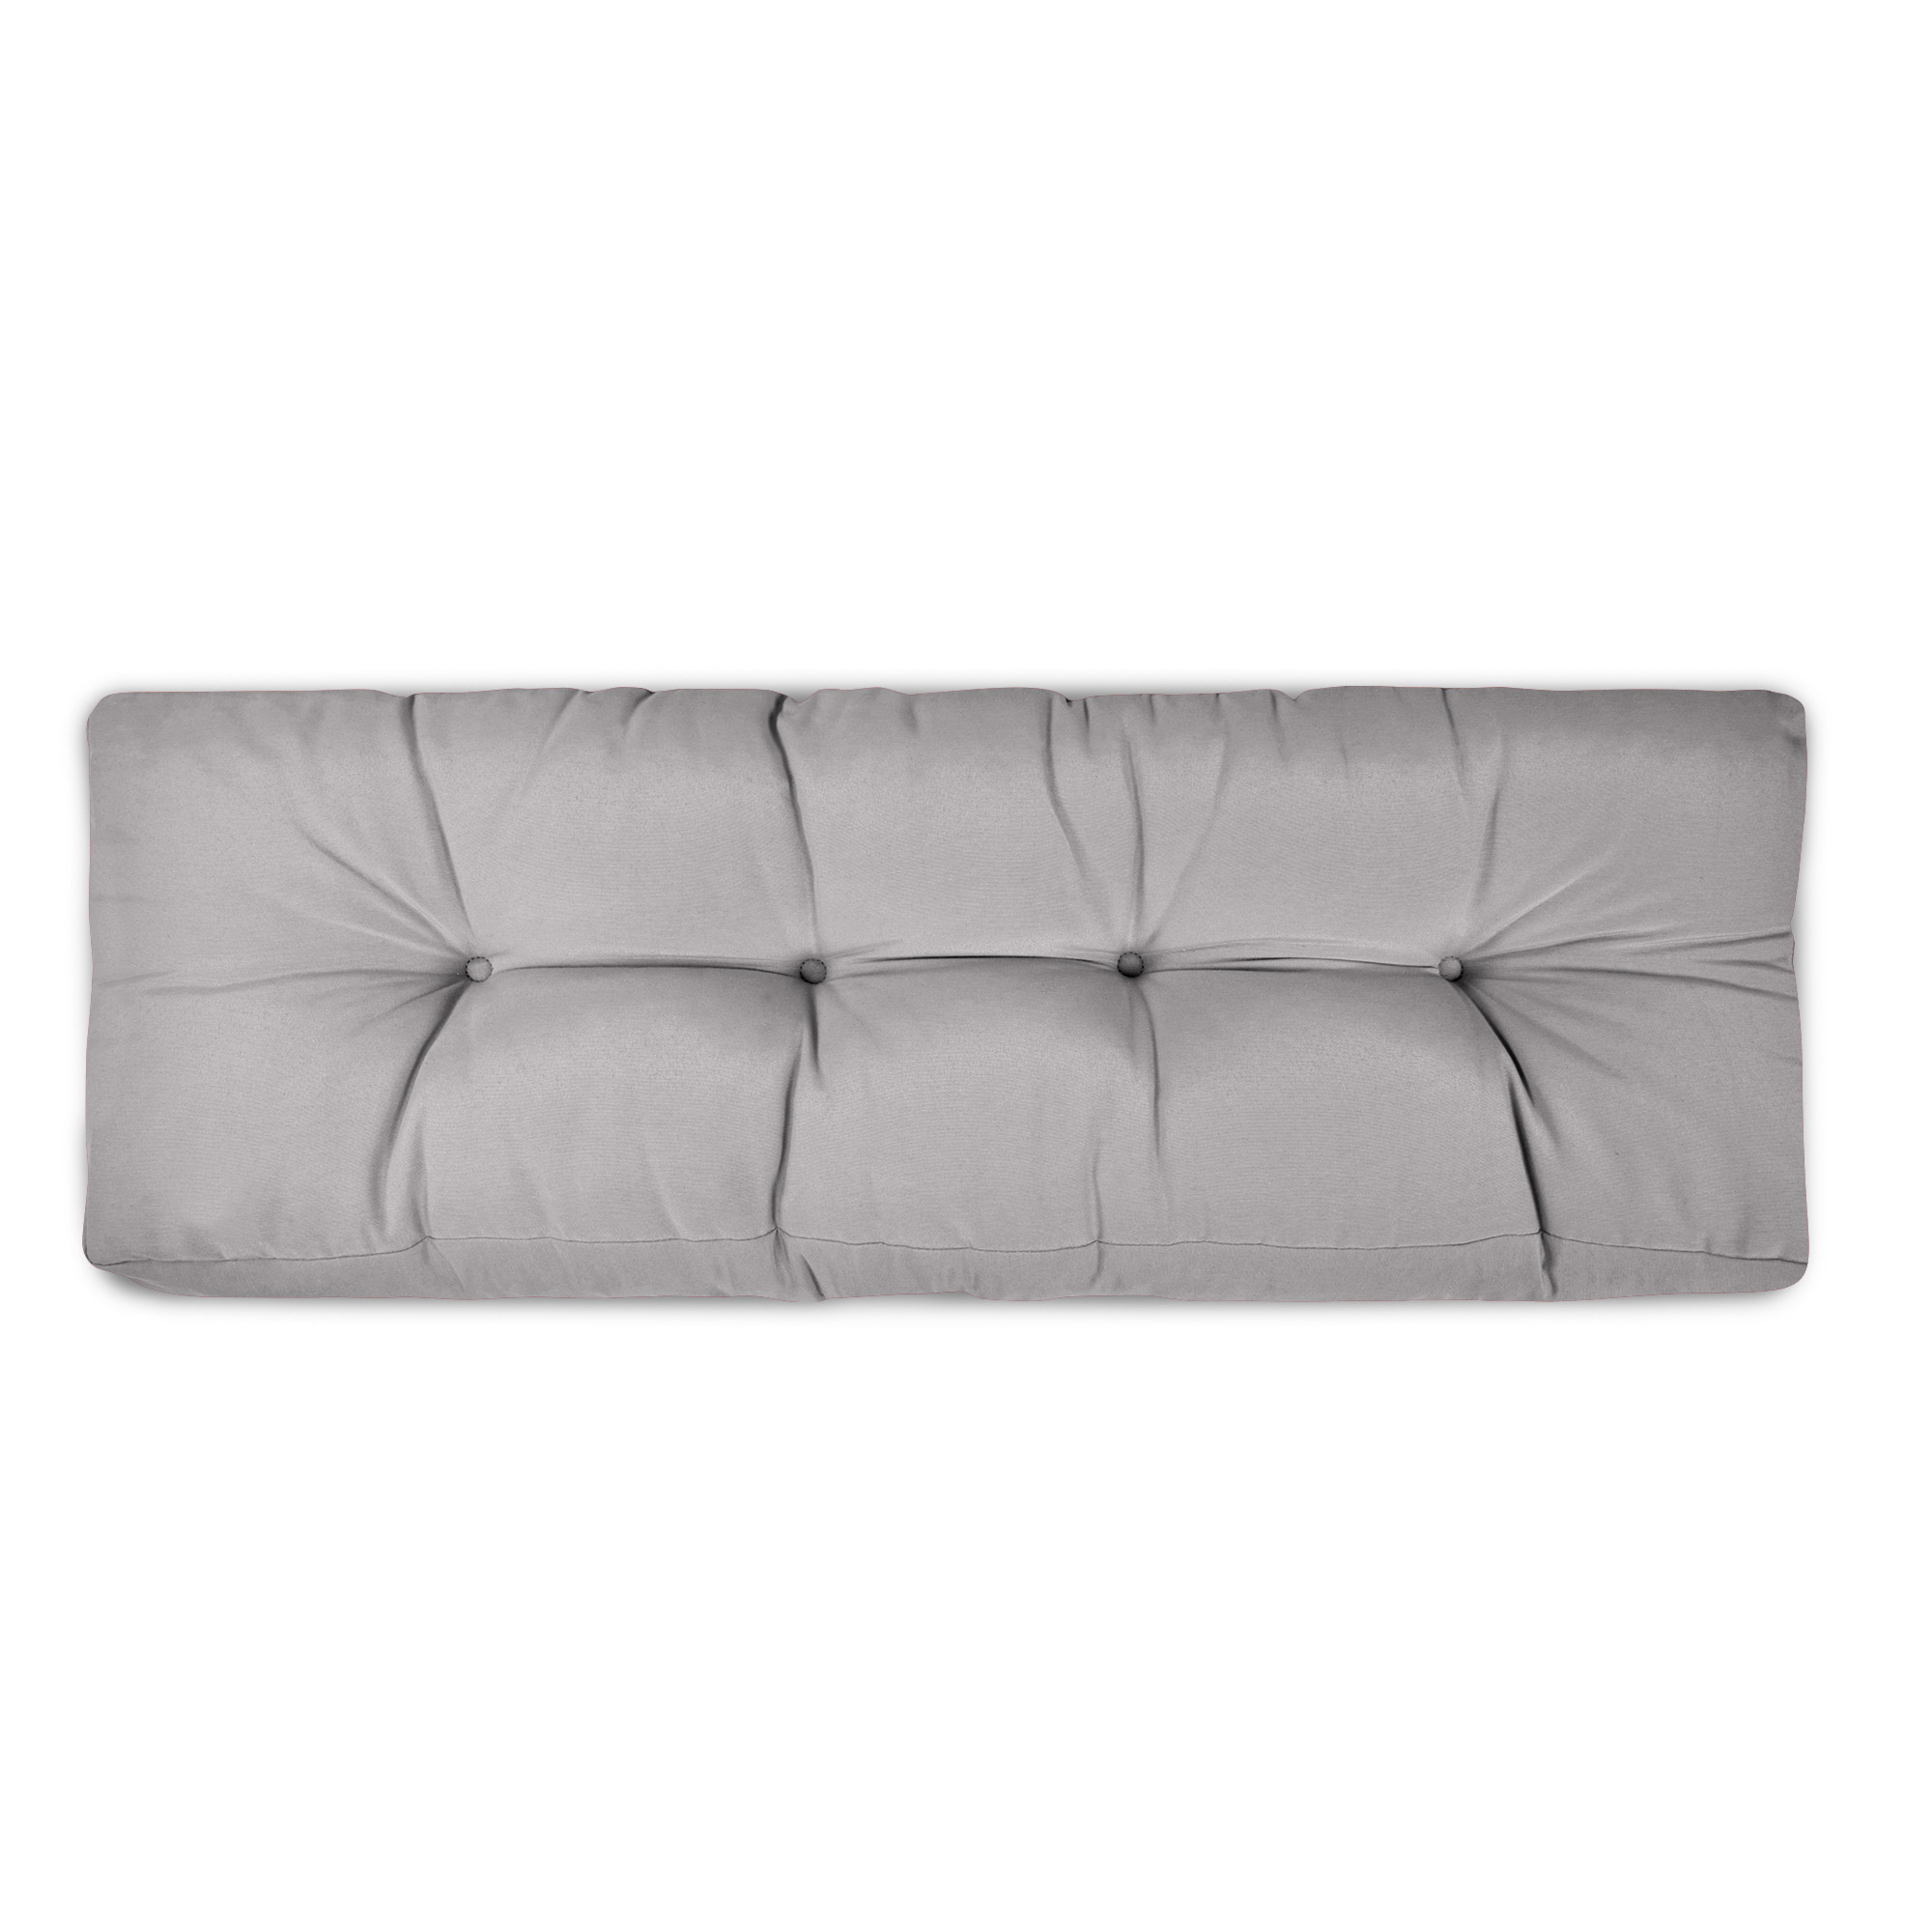 Outdoor Kissen 40 X 40 Details About 1 Euro Pallet Cushion Eco Style 120 X 40 X 20 Cm In Outdoor Back Pad Light Grey